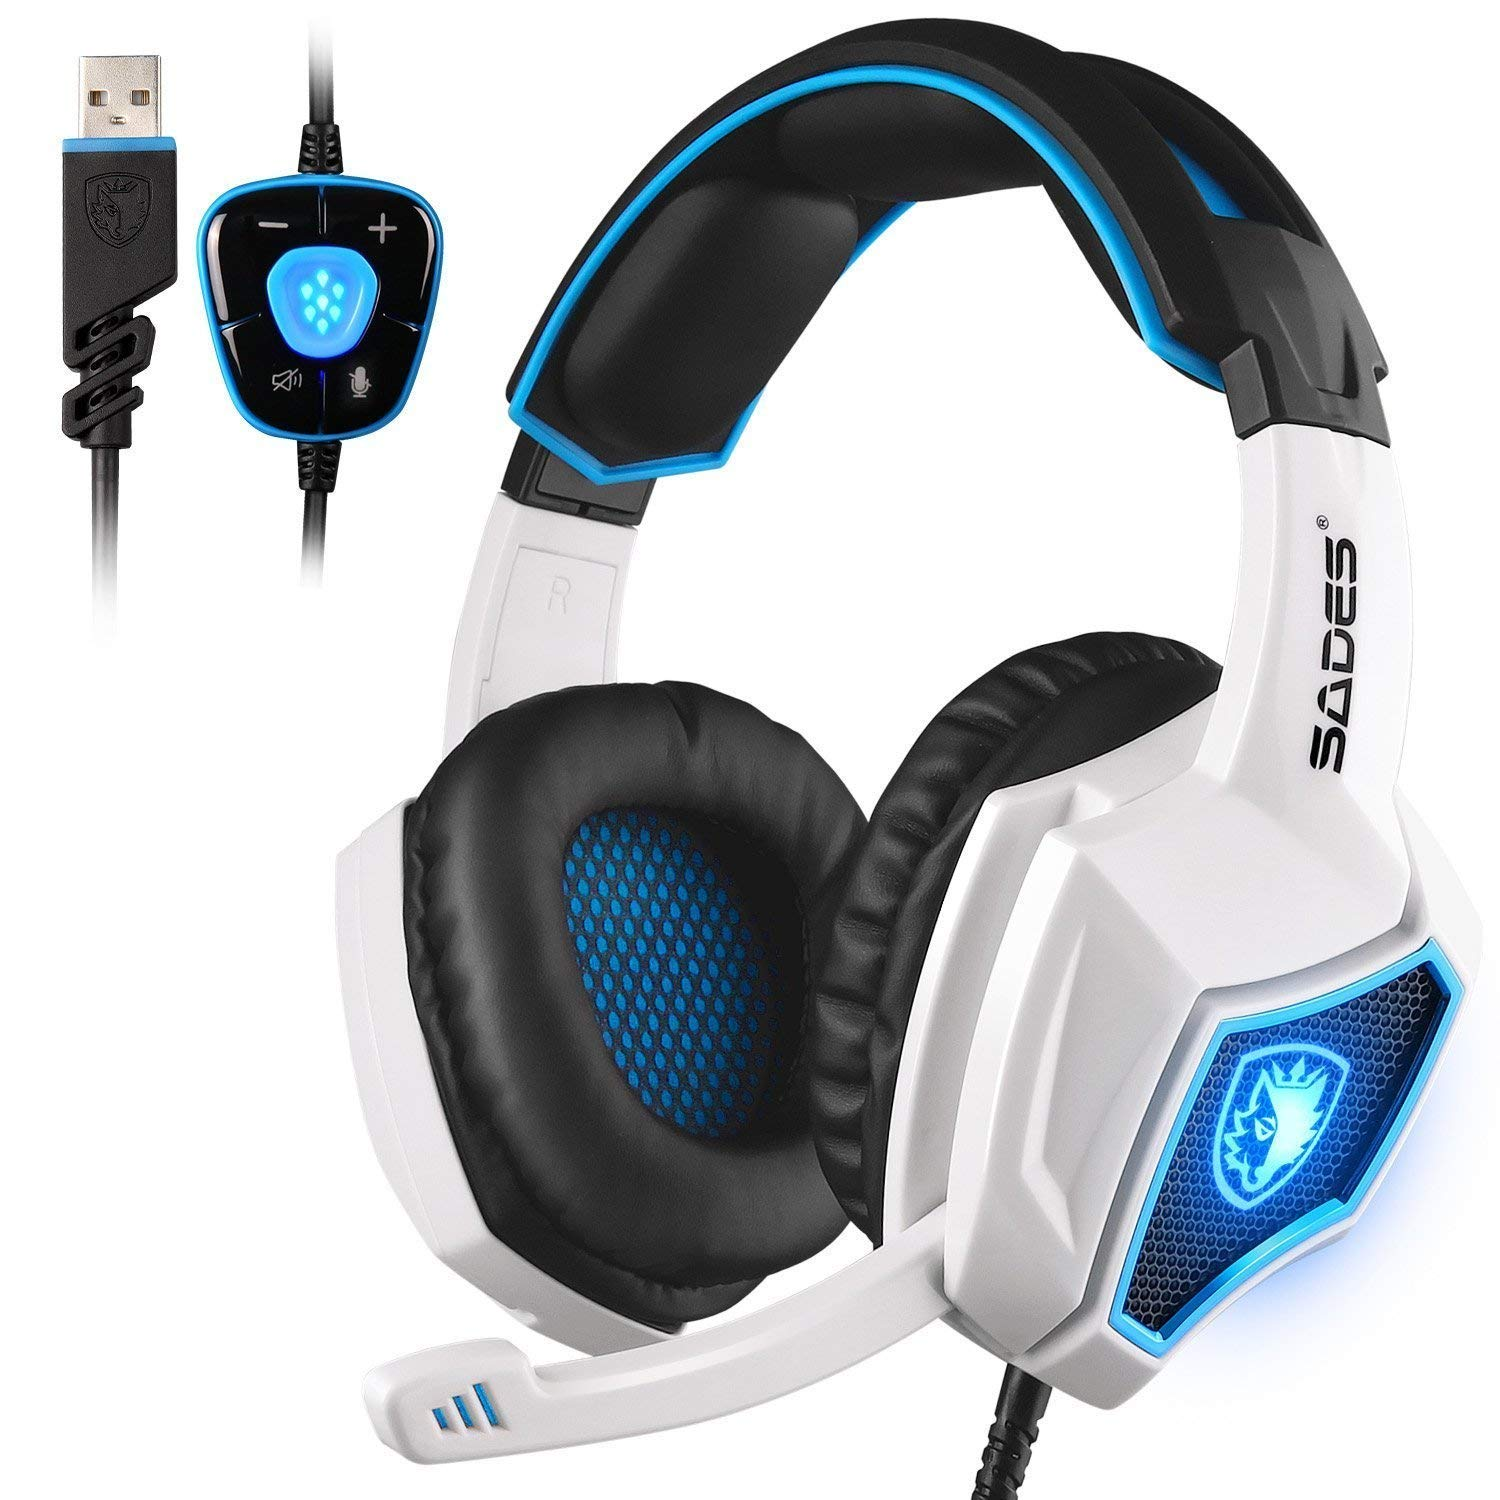 93888e4b1e3 SADES Spirit Wolf 7.1 Surround Stereo Sound USB Computer Gaming Headset  with Microphone,Over-the-Ear Noise Isolating,Breathing LED Light For PC  Gamers ...